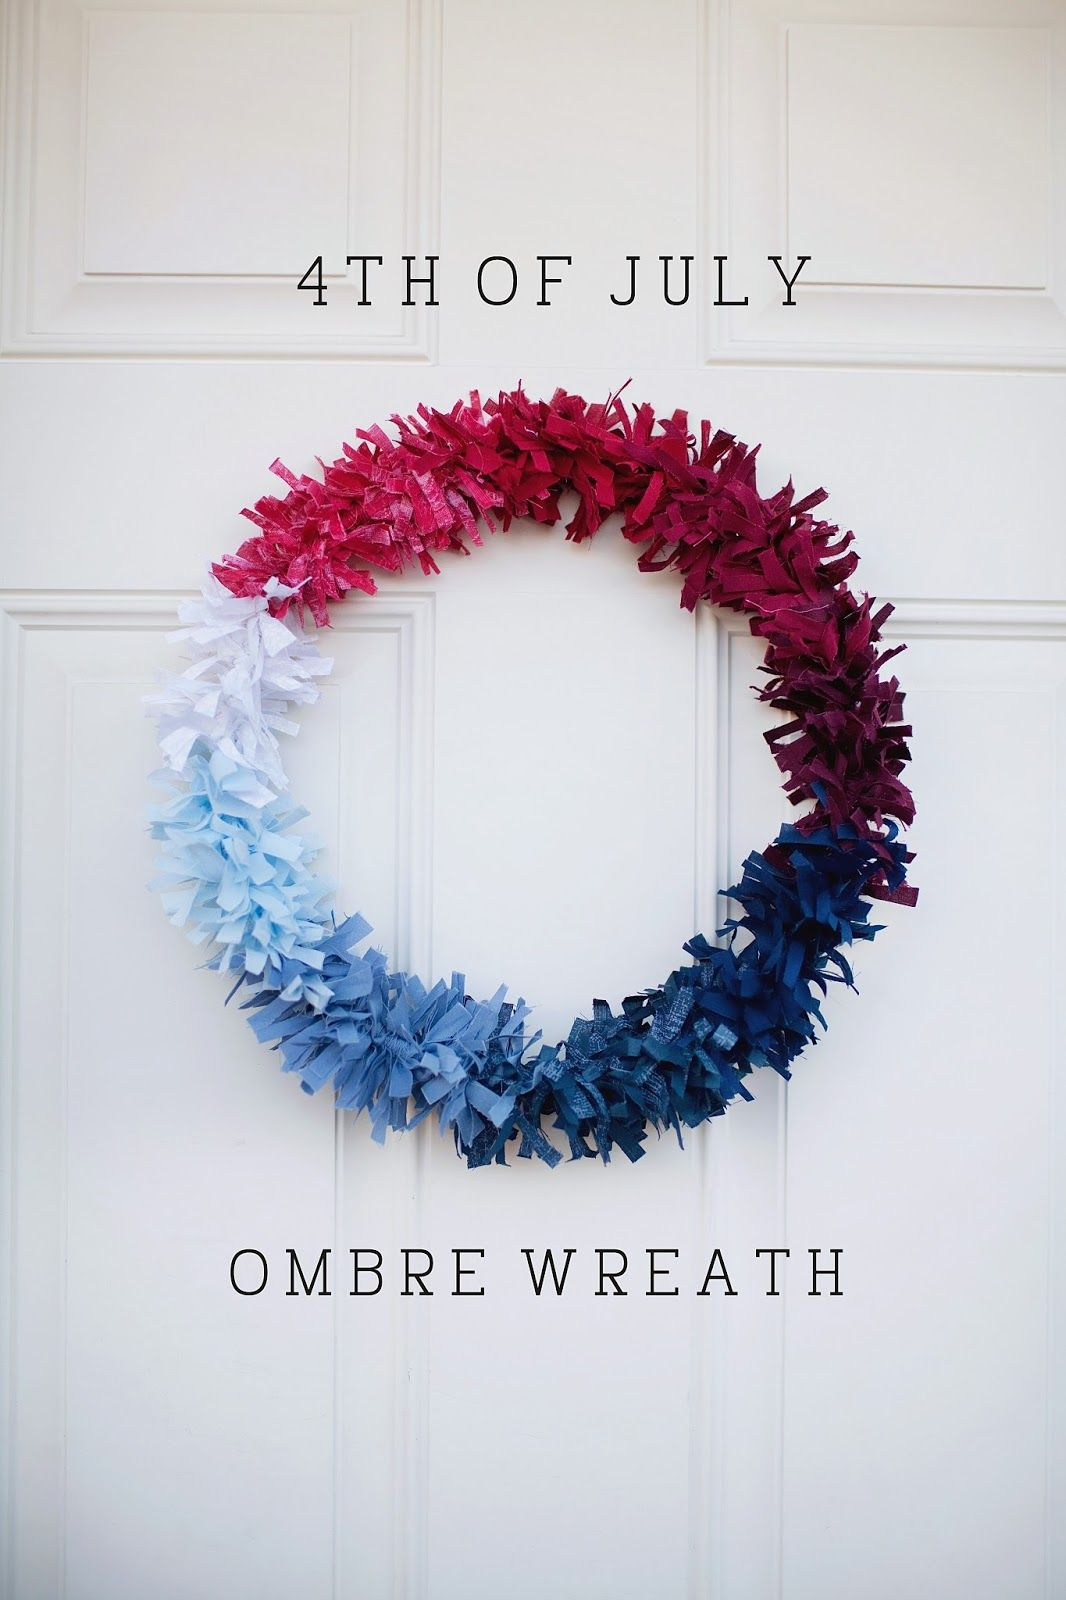 1561548147 828 cool 4th of july wreath ideas that would look perfect on your front door - Cool 4th of July Wreath Ideas That Would Look Perfect On Your Front Door